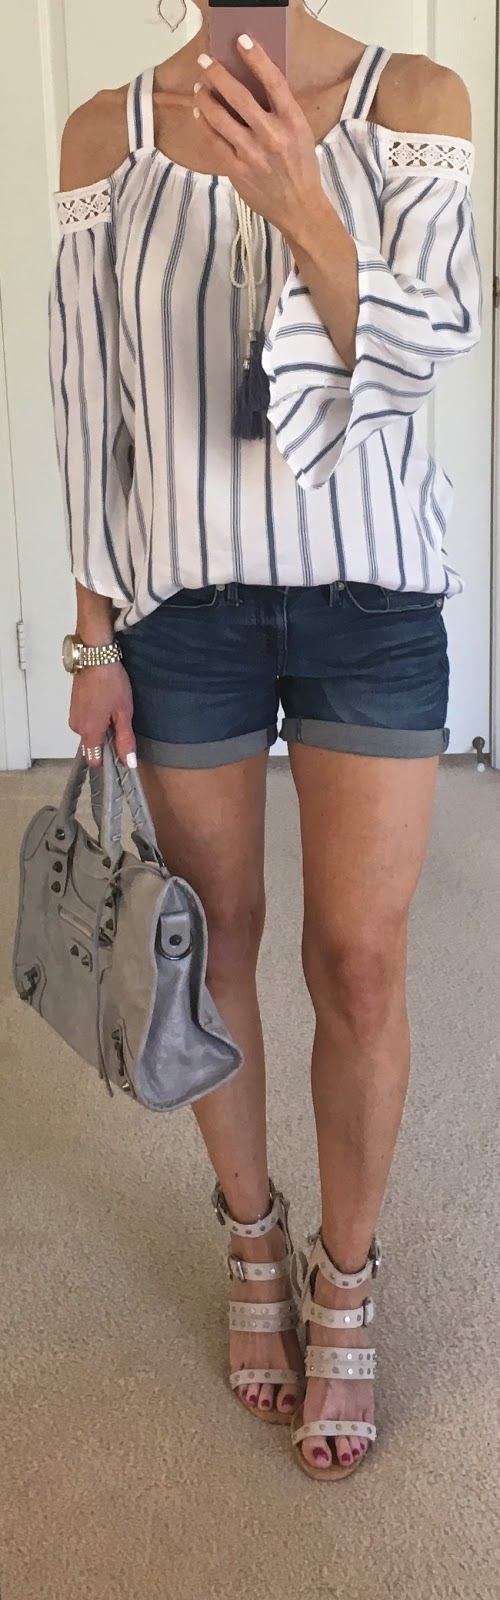 9c4f2534e8 Top: Charming Charlie | Shorts: Target (Similar) | Shoes: Dolce Vita c/o  Amazon | Earrings: Kendra Scott | Bag: c/o Amazon | Watch: Fossil | Ring:  Stella ...